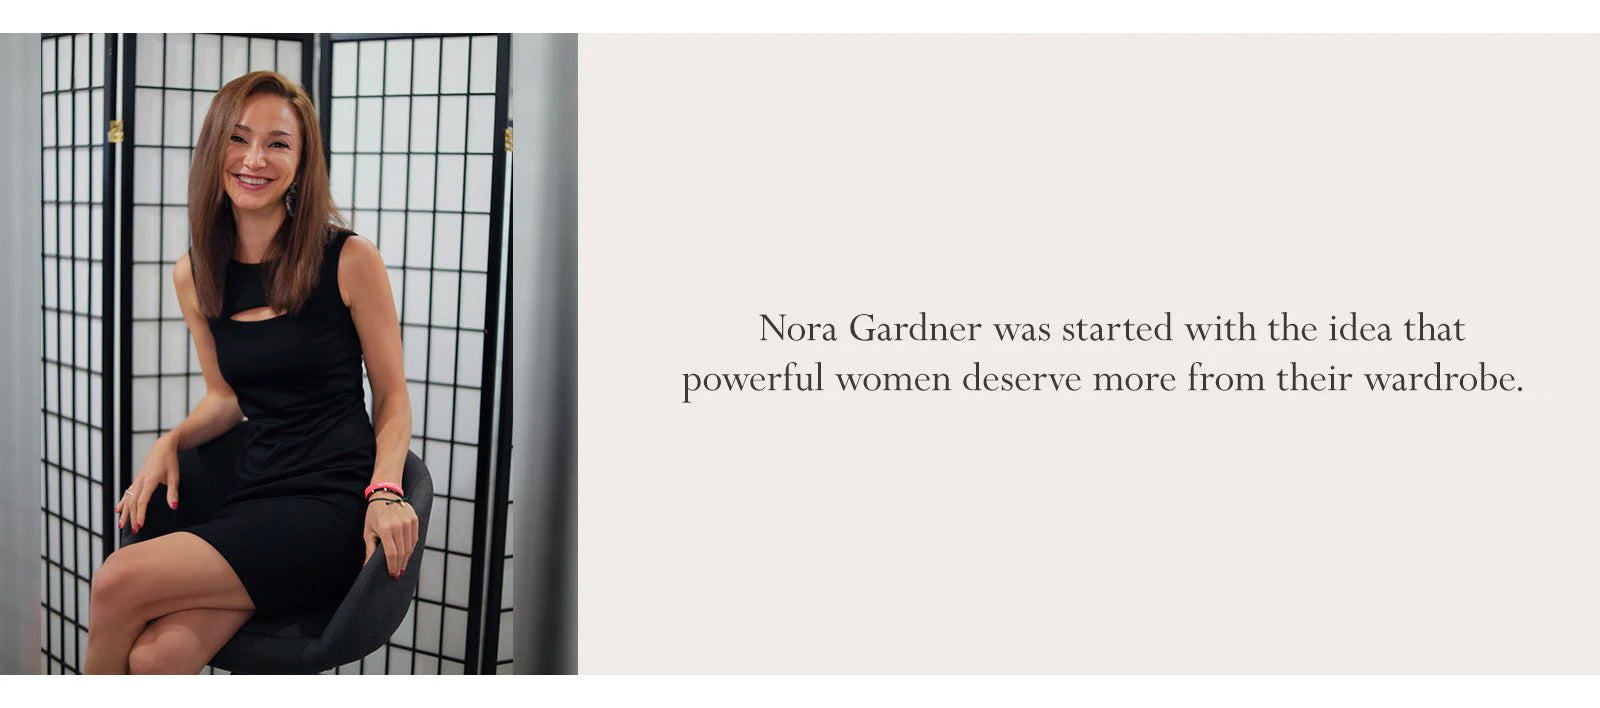 Nora Gardner was started to allow professional women to get more from their wardrobe.